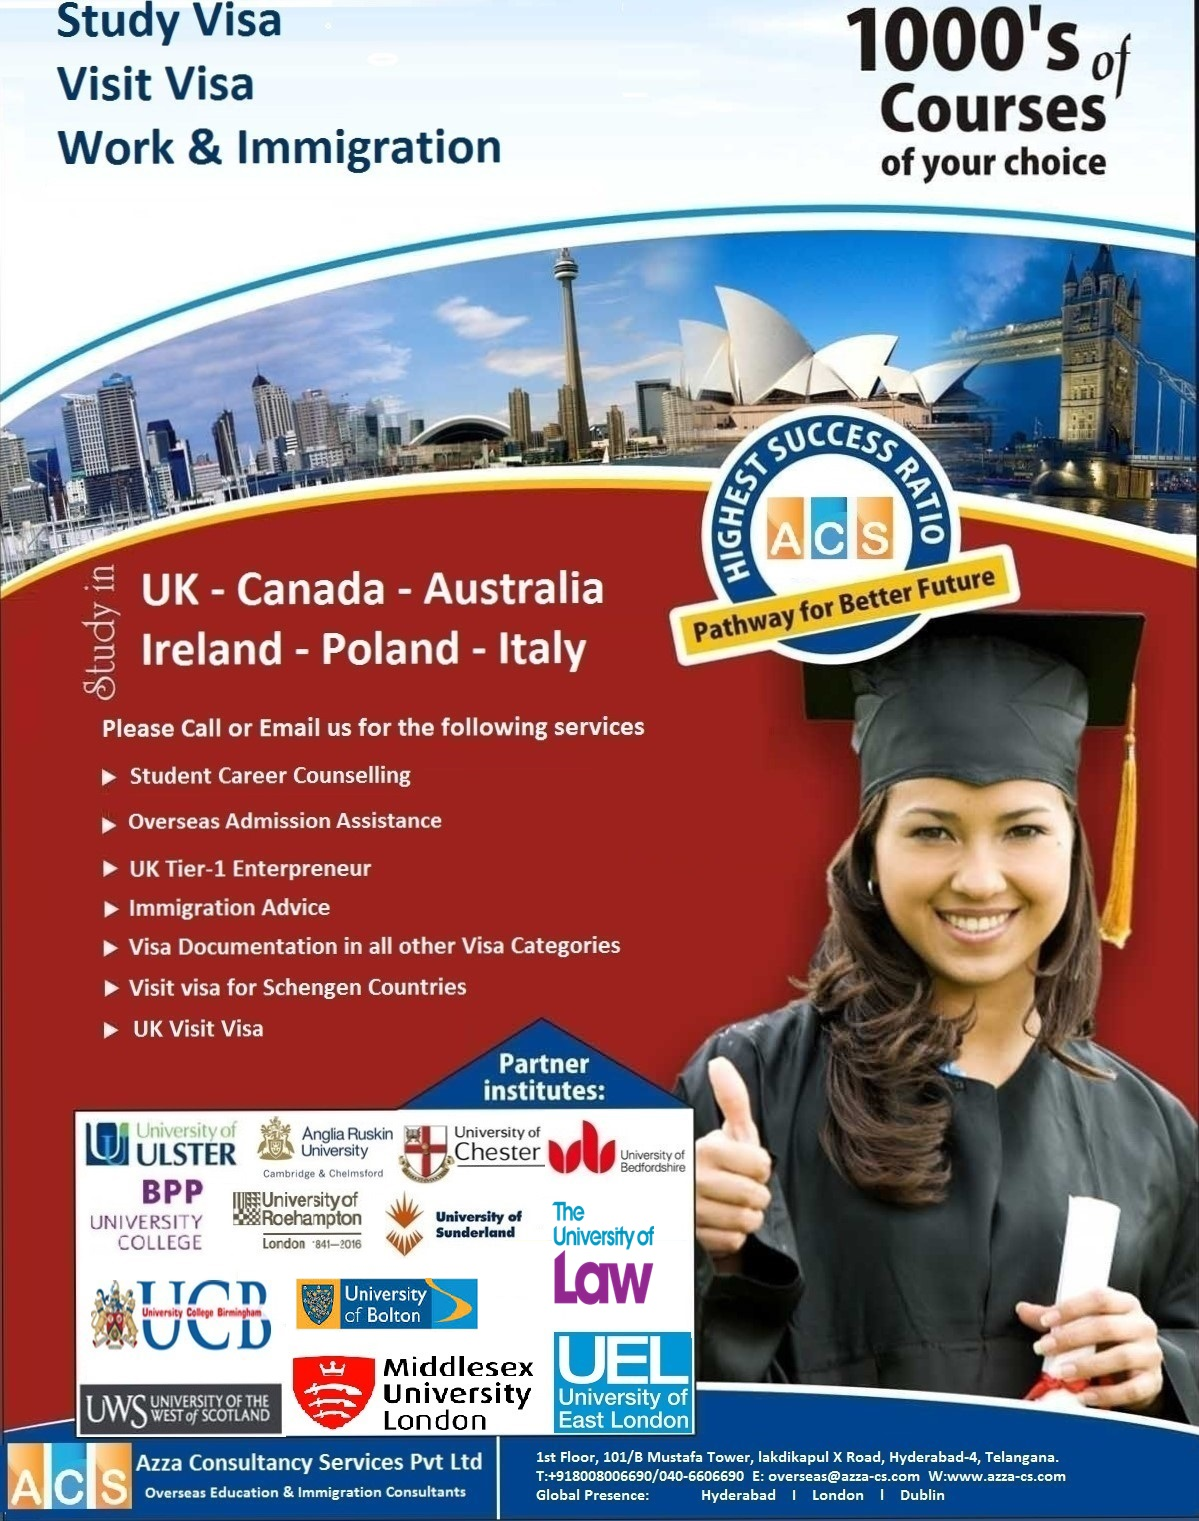 Overseas Education & Immigration Consultants